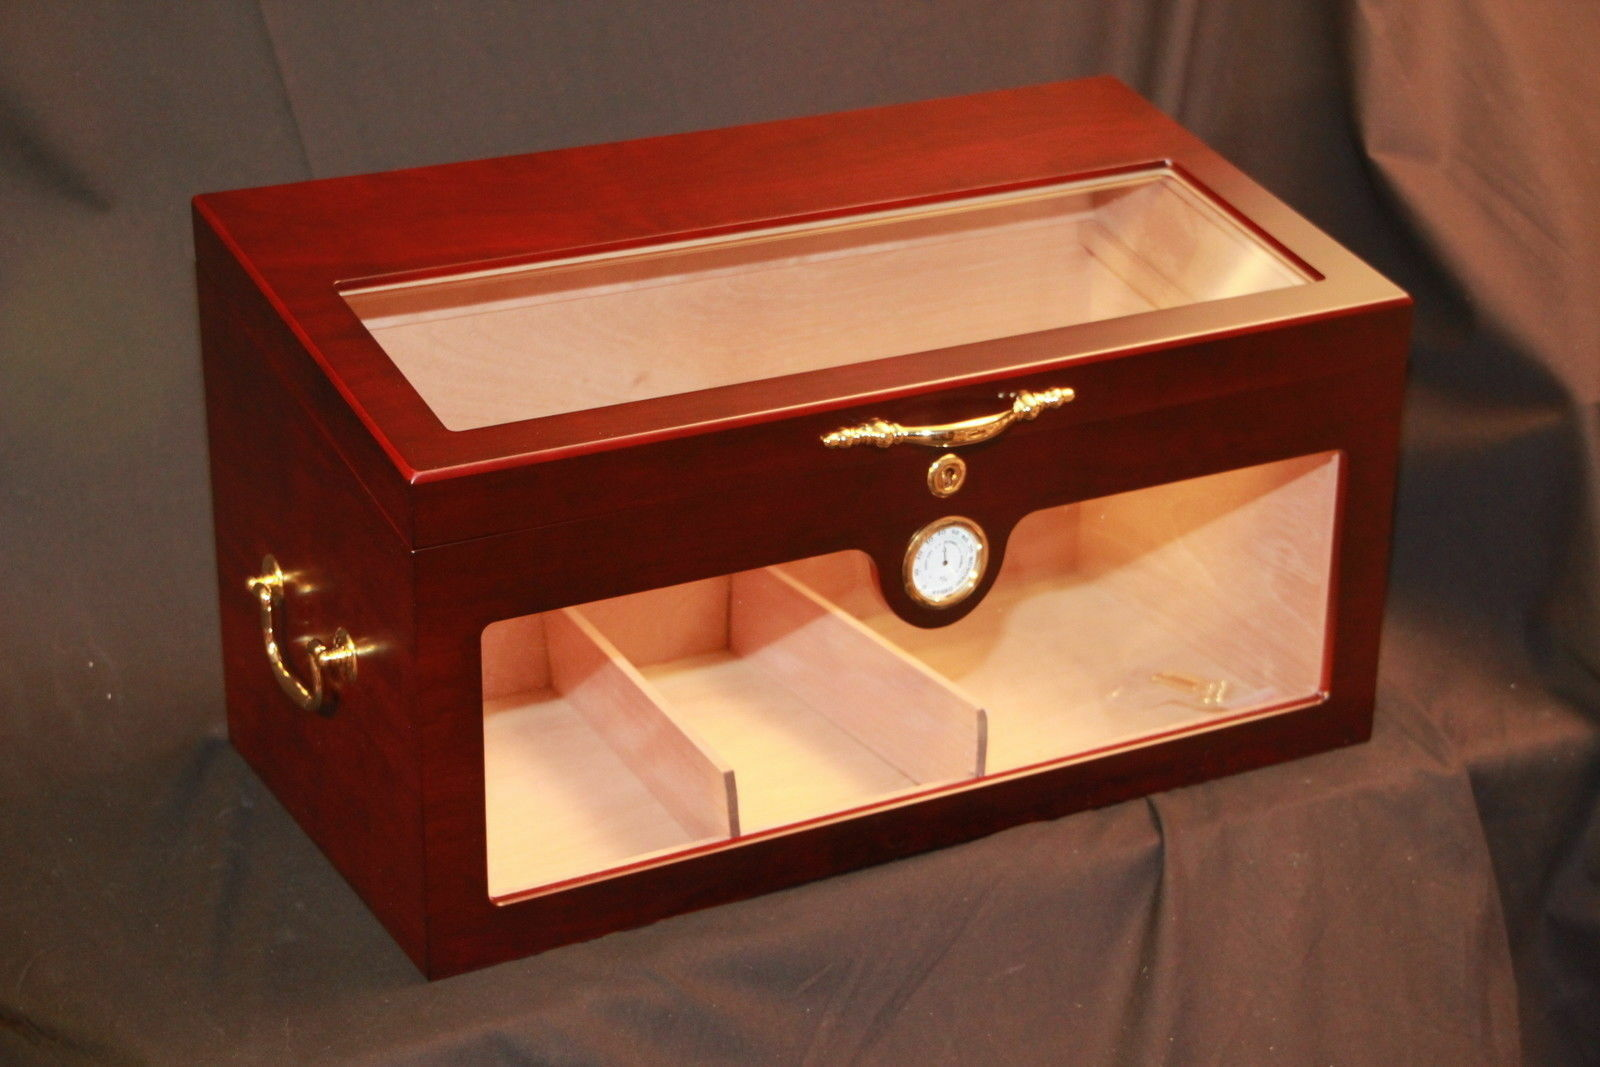 How to Build a Cabinet Humidor | eBay